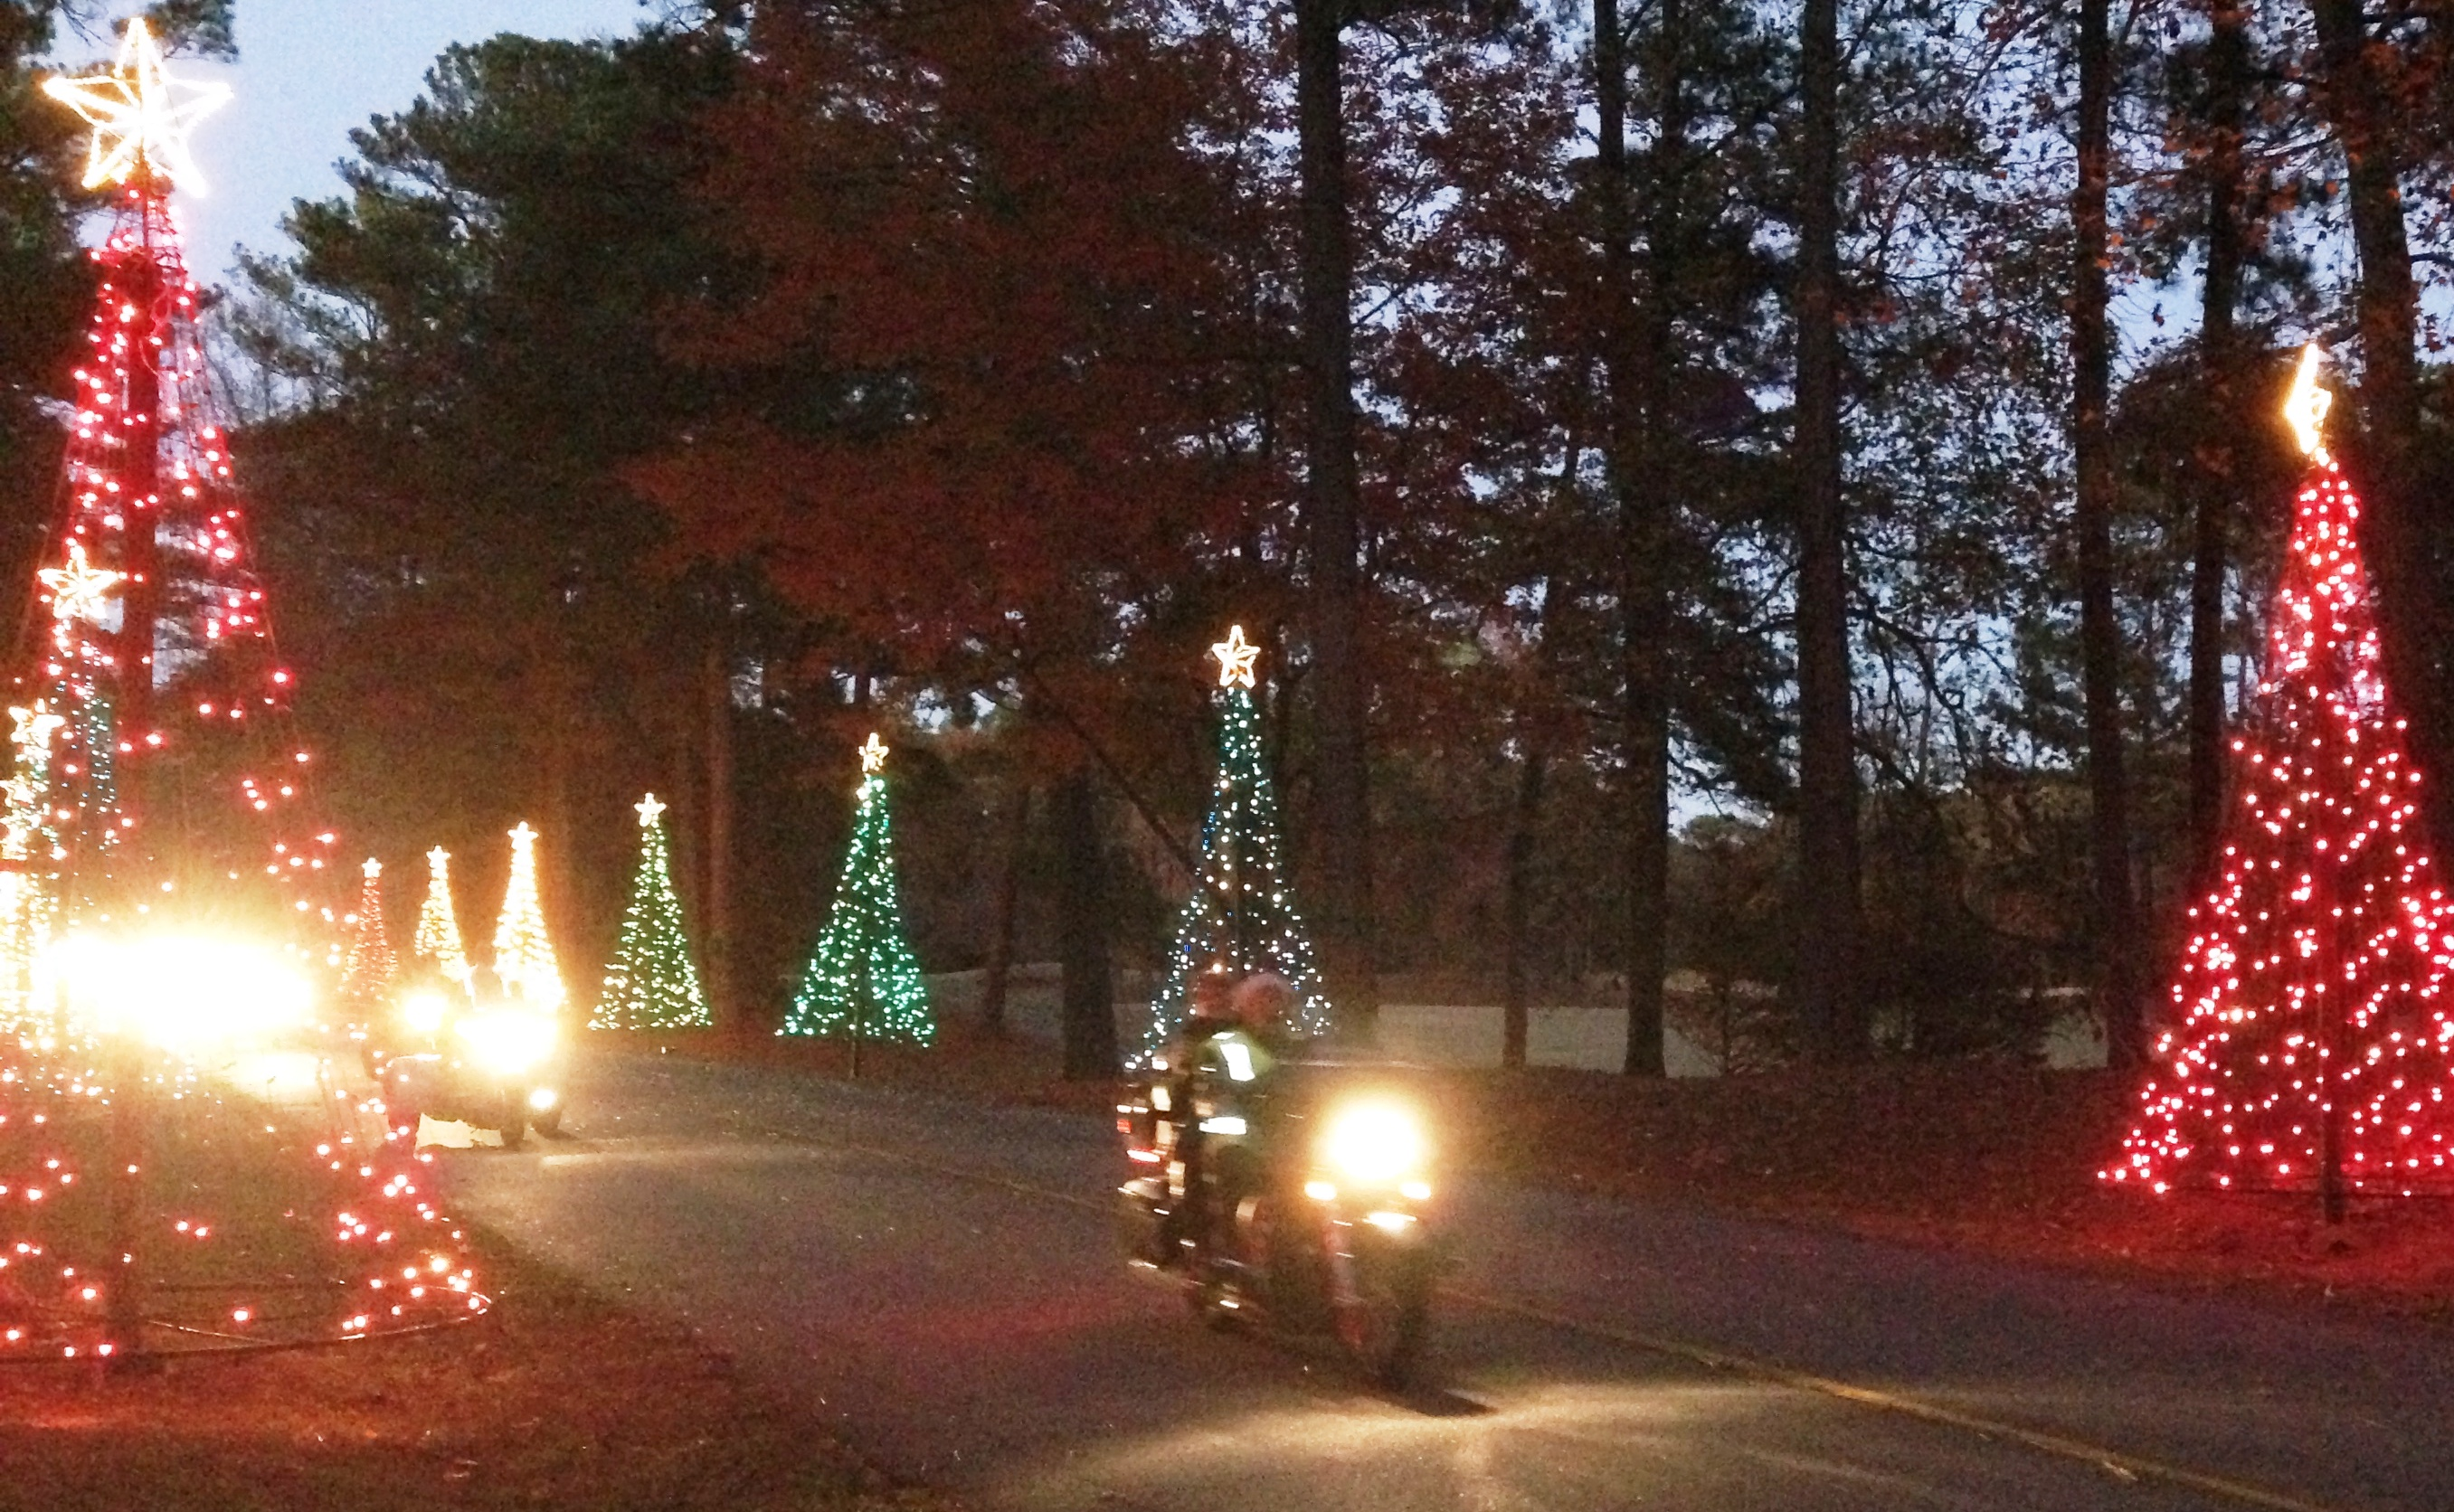 Callaway Gardens Christmas.Tickets For Motorcycle Night At Callaway Gardens In Pine